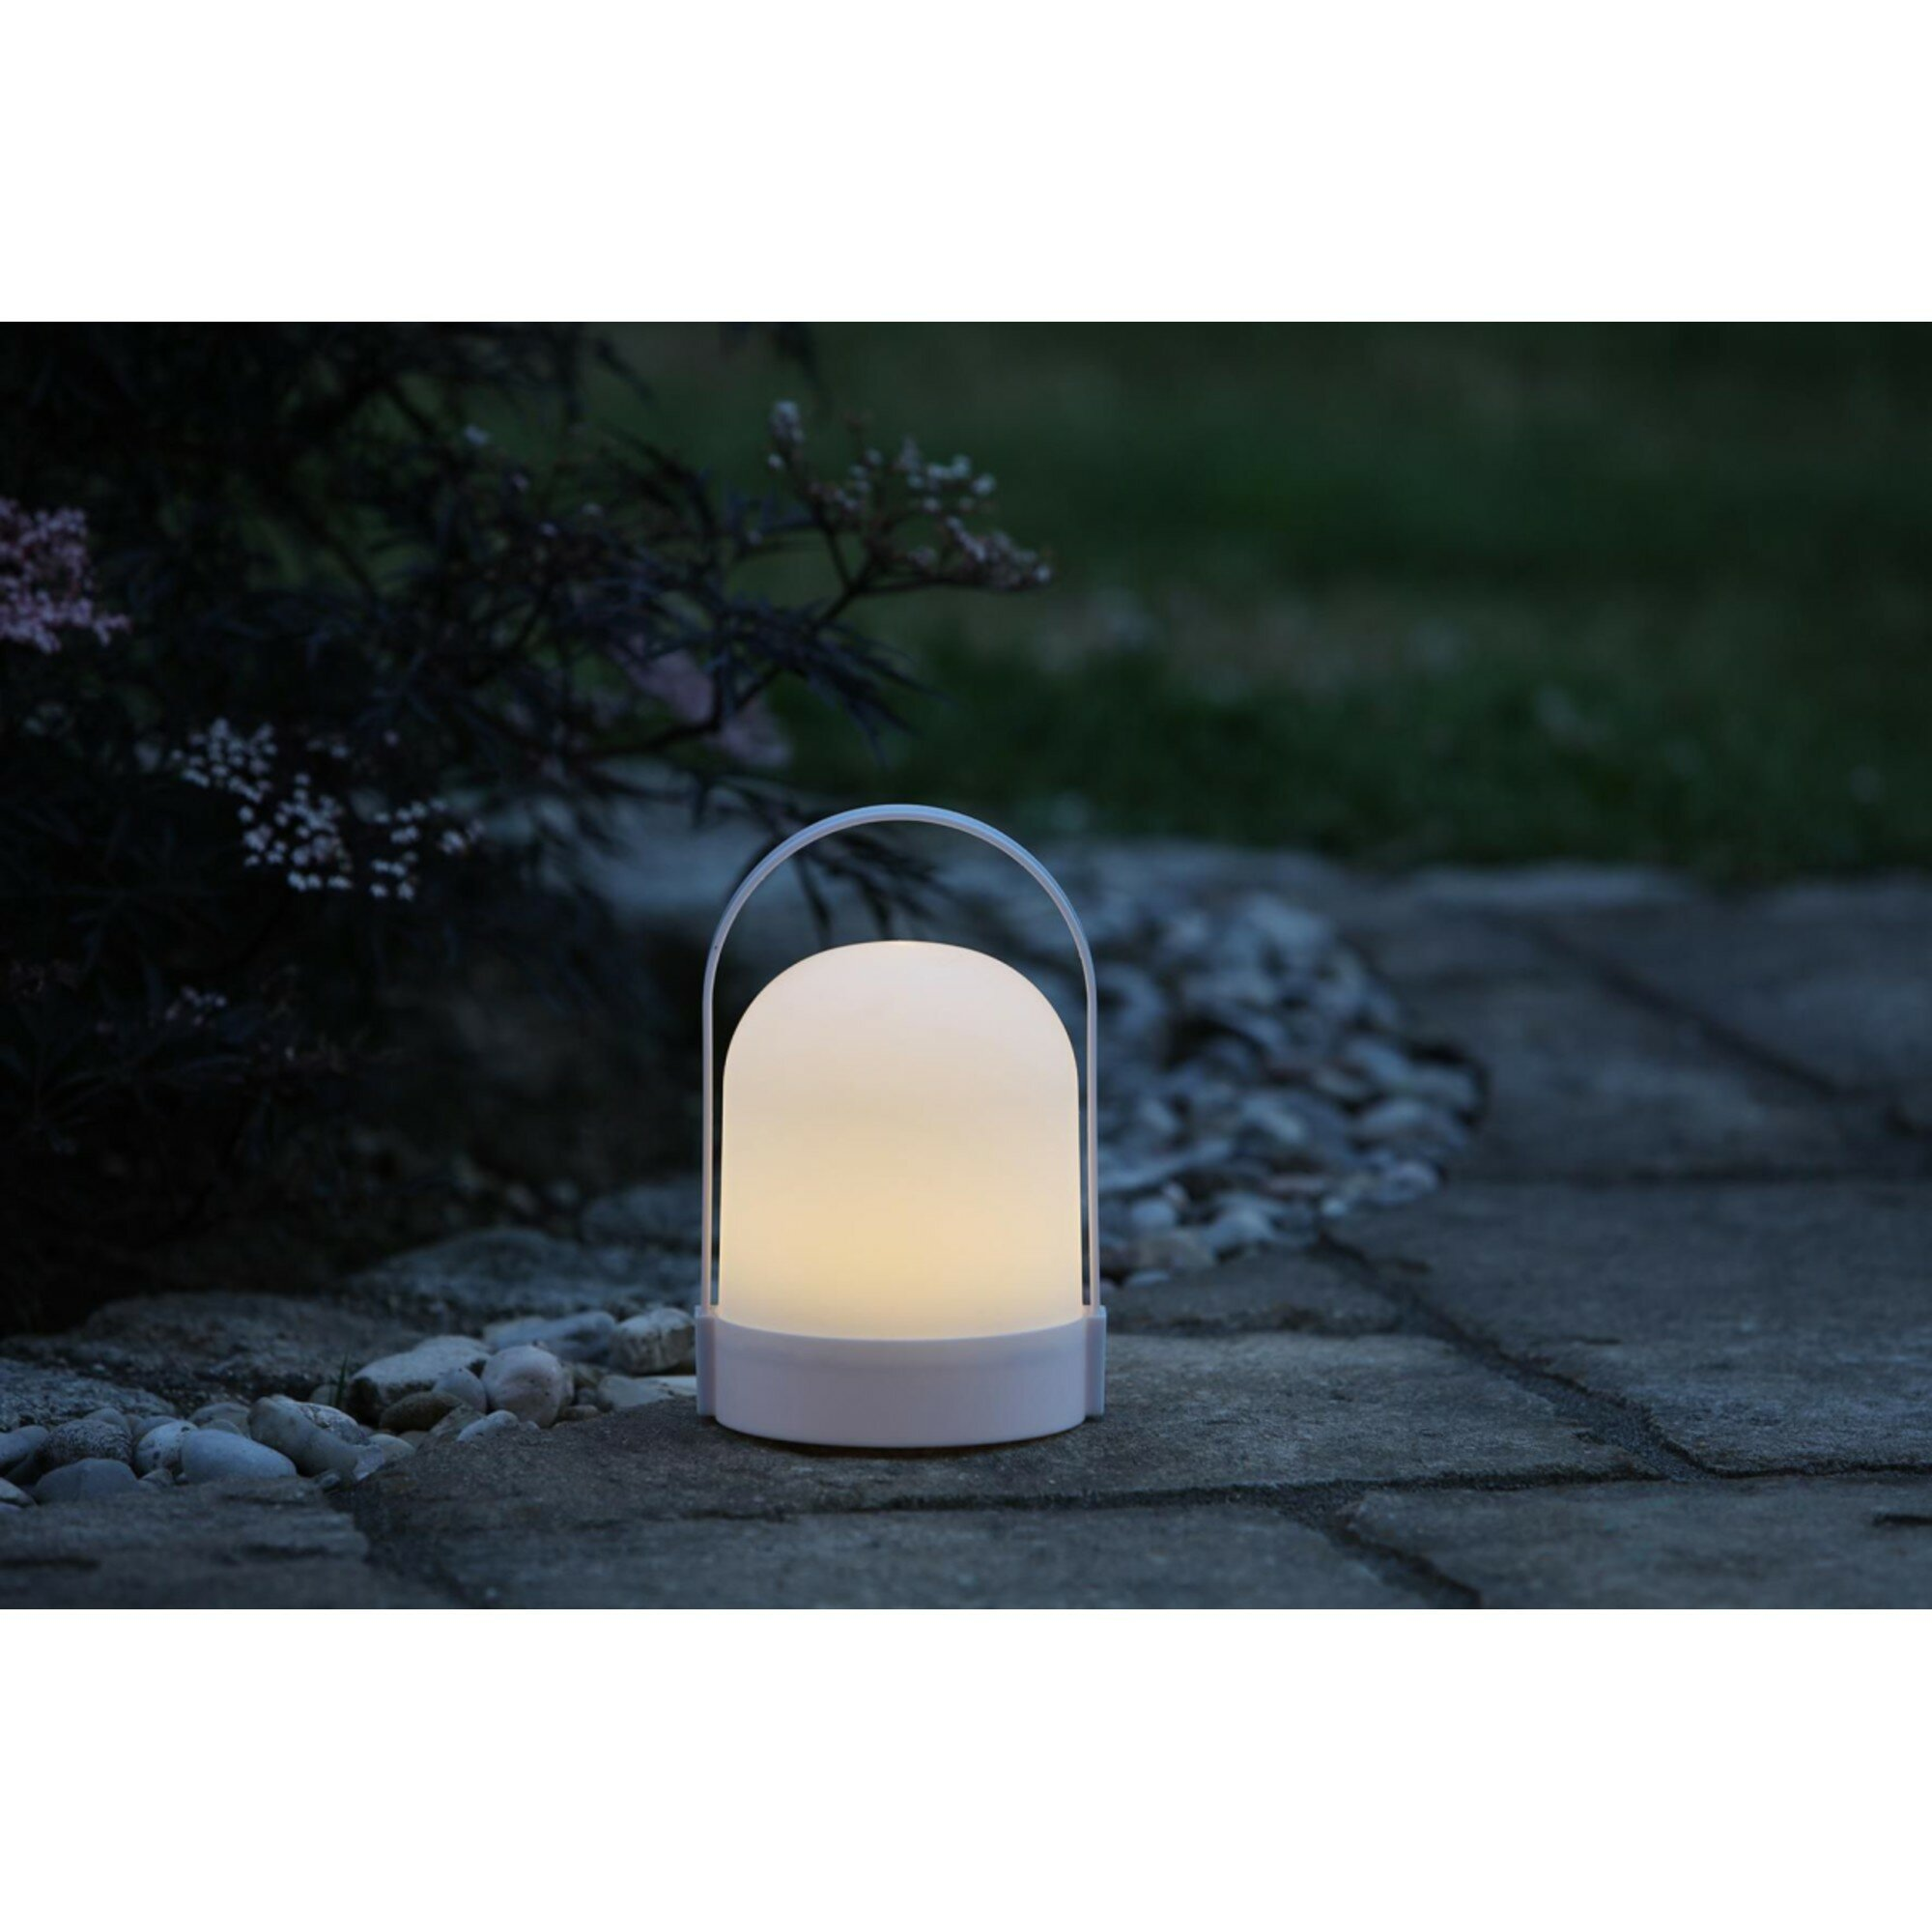 Corrigan Studio Gathers 21cm Battery Powered Led Outdoor Table Lamp